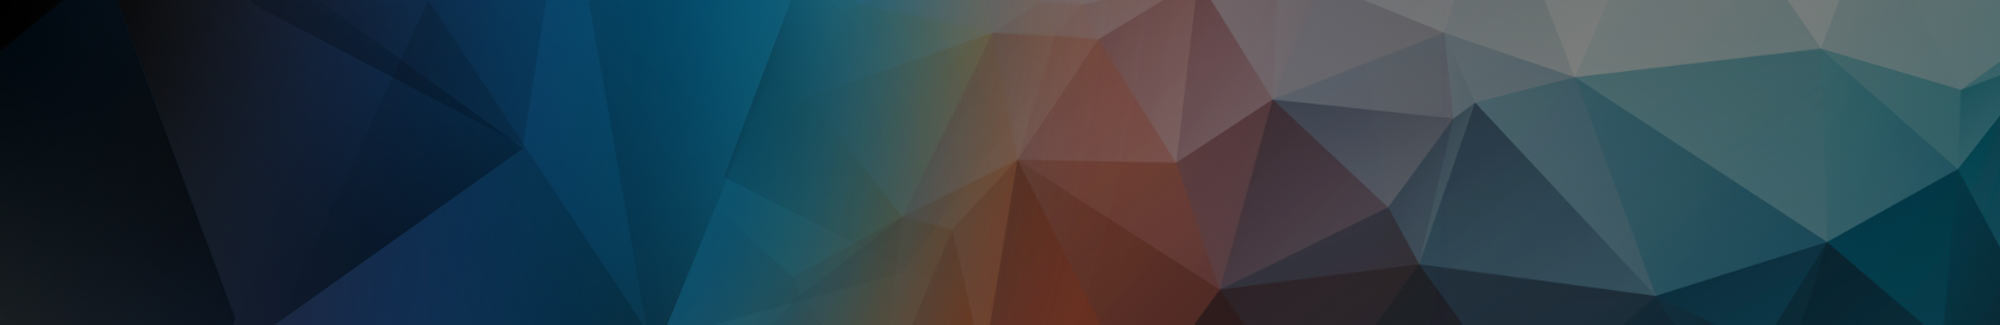 Abstract background of prism colors